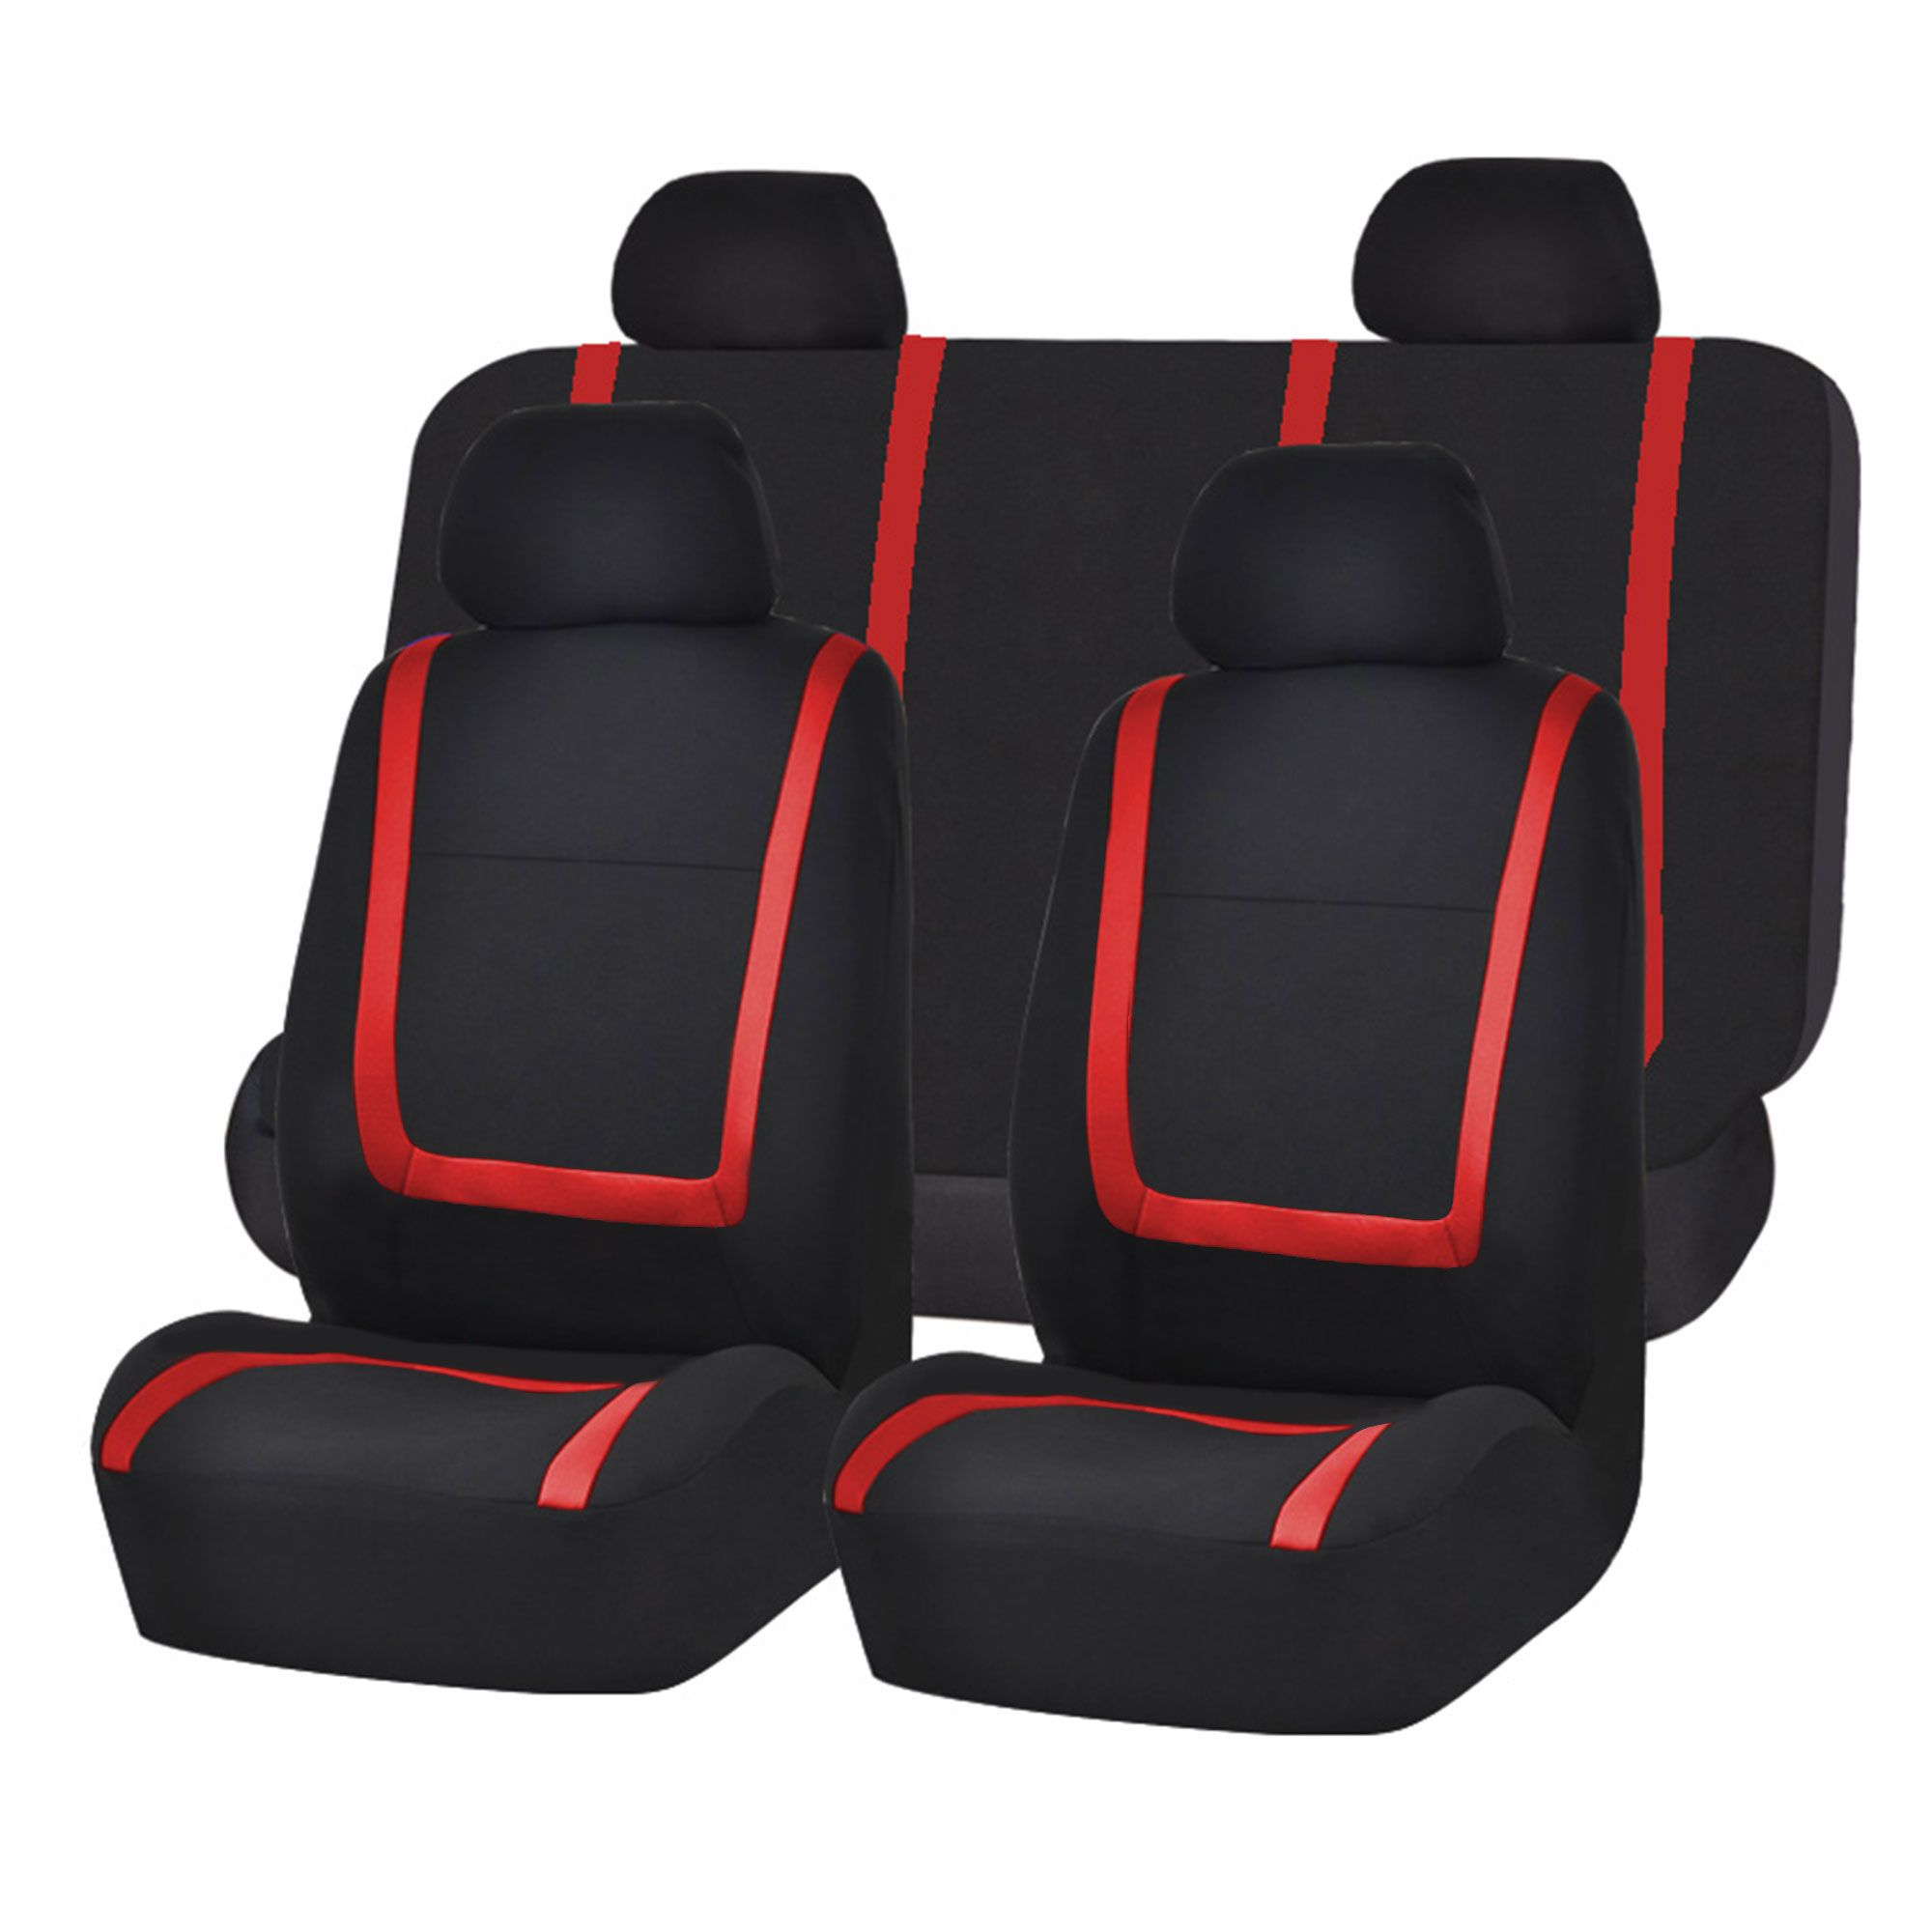 Auto Seat Covers For Car Sedan Truck Van Universal 12 Colors